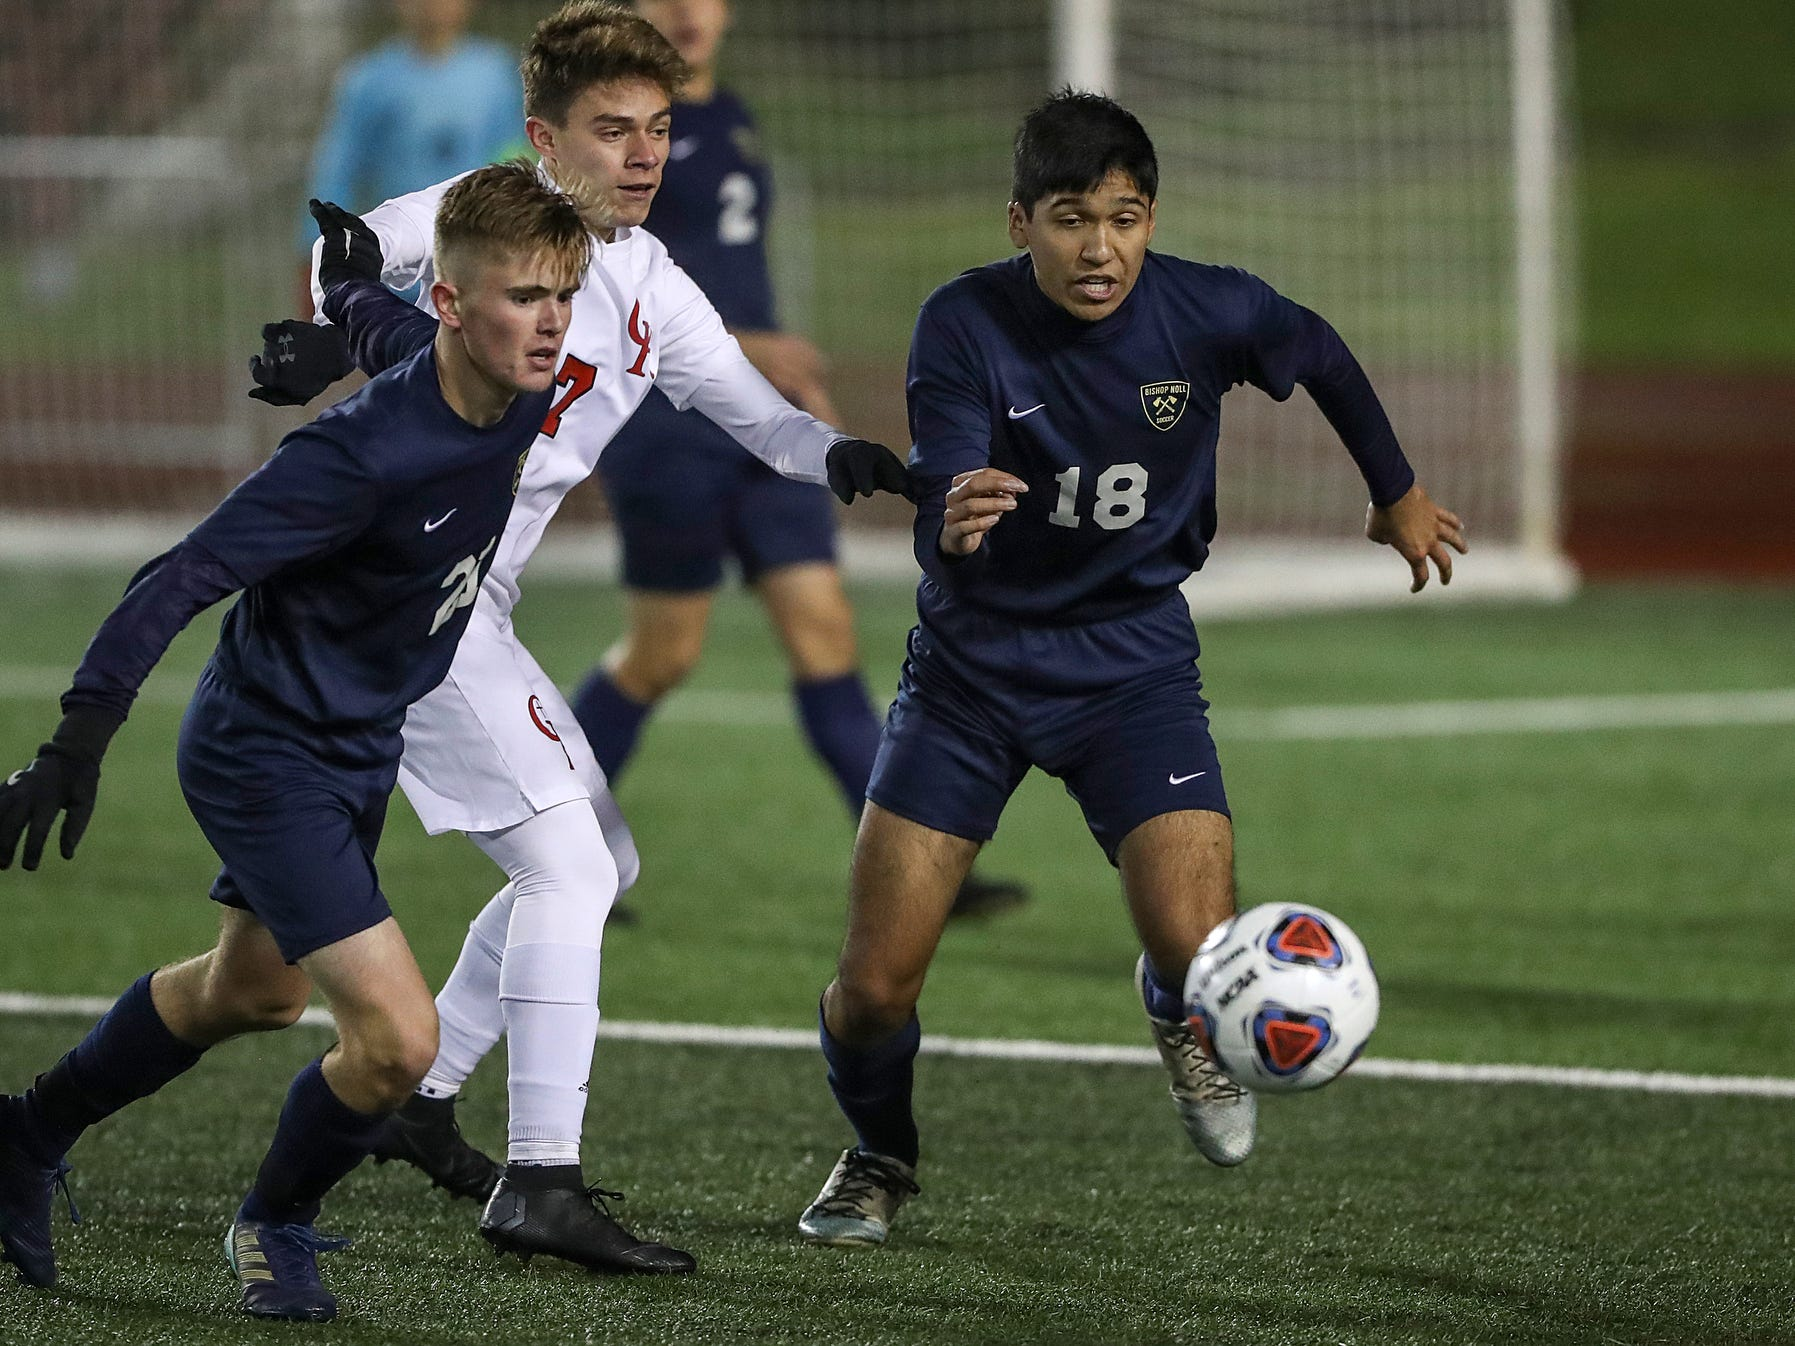 Cardinal Ritter Raiders midfielder Andy Bonilla (7) breaks between Hammond Bishop Noll Warriors Noah Reid (21) and Brandon Fuentes (18) during the first half of IHSAA class 2A state finals at IUPUI's Michael A. Carroll Stadium in Indianapolis, Friday, Oct. 26, 2018. Hammond Bishop Noll defeated Cardinal Ritter, 1-0.